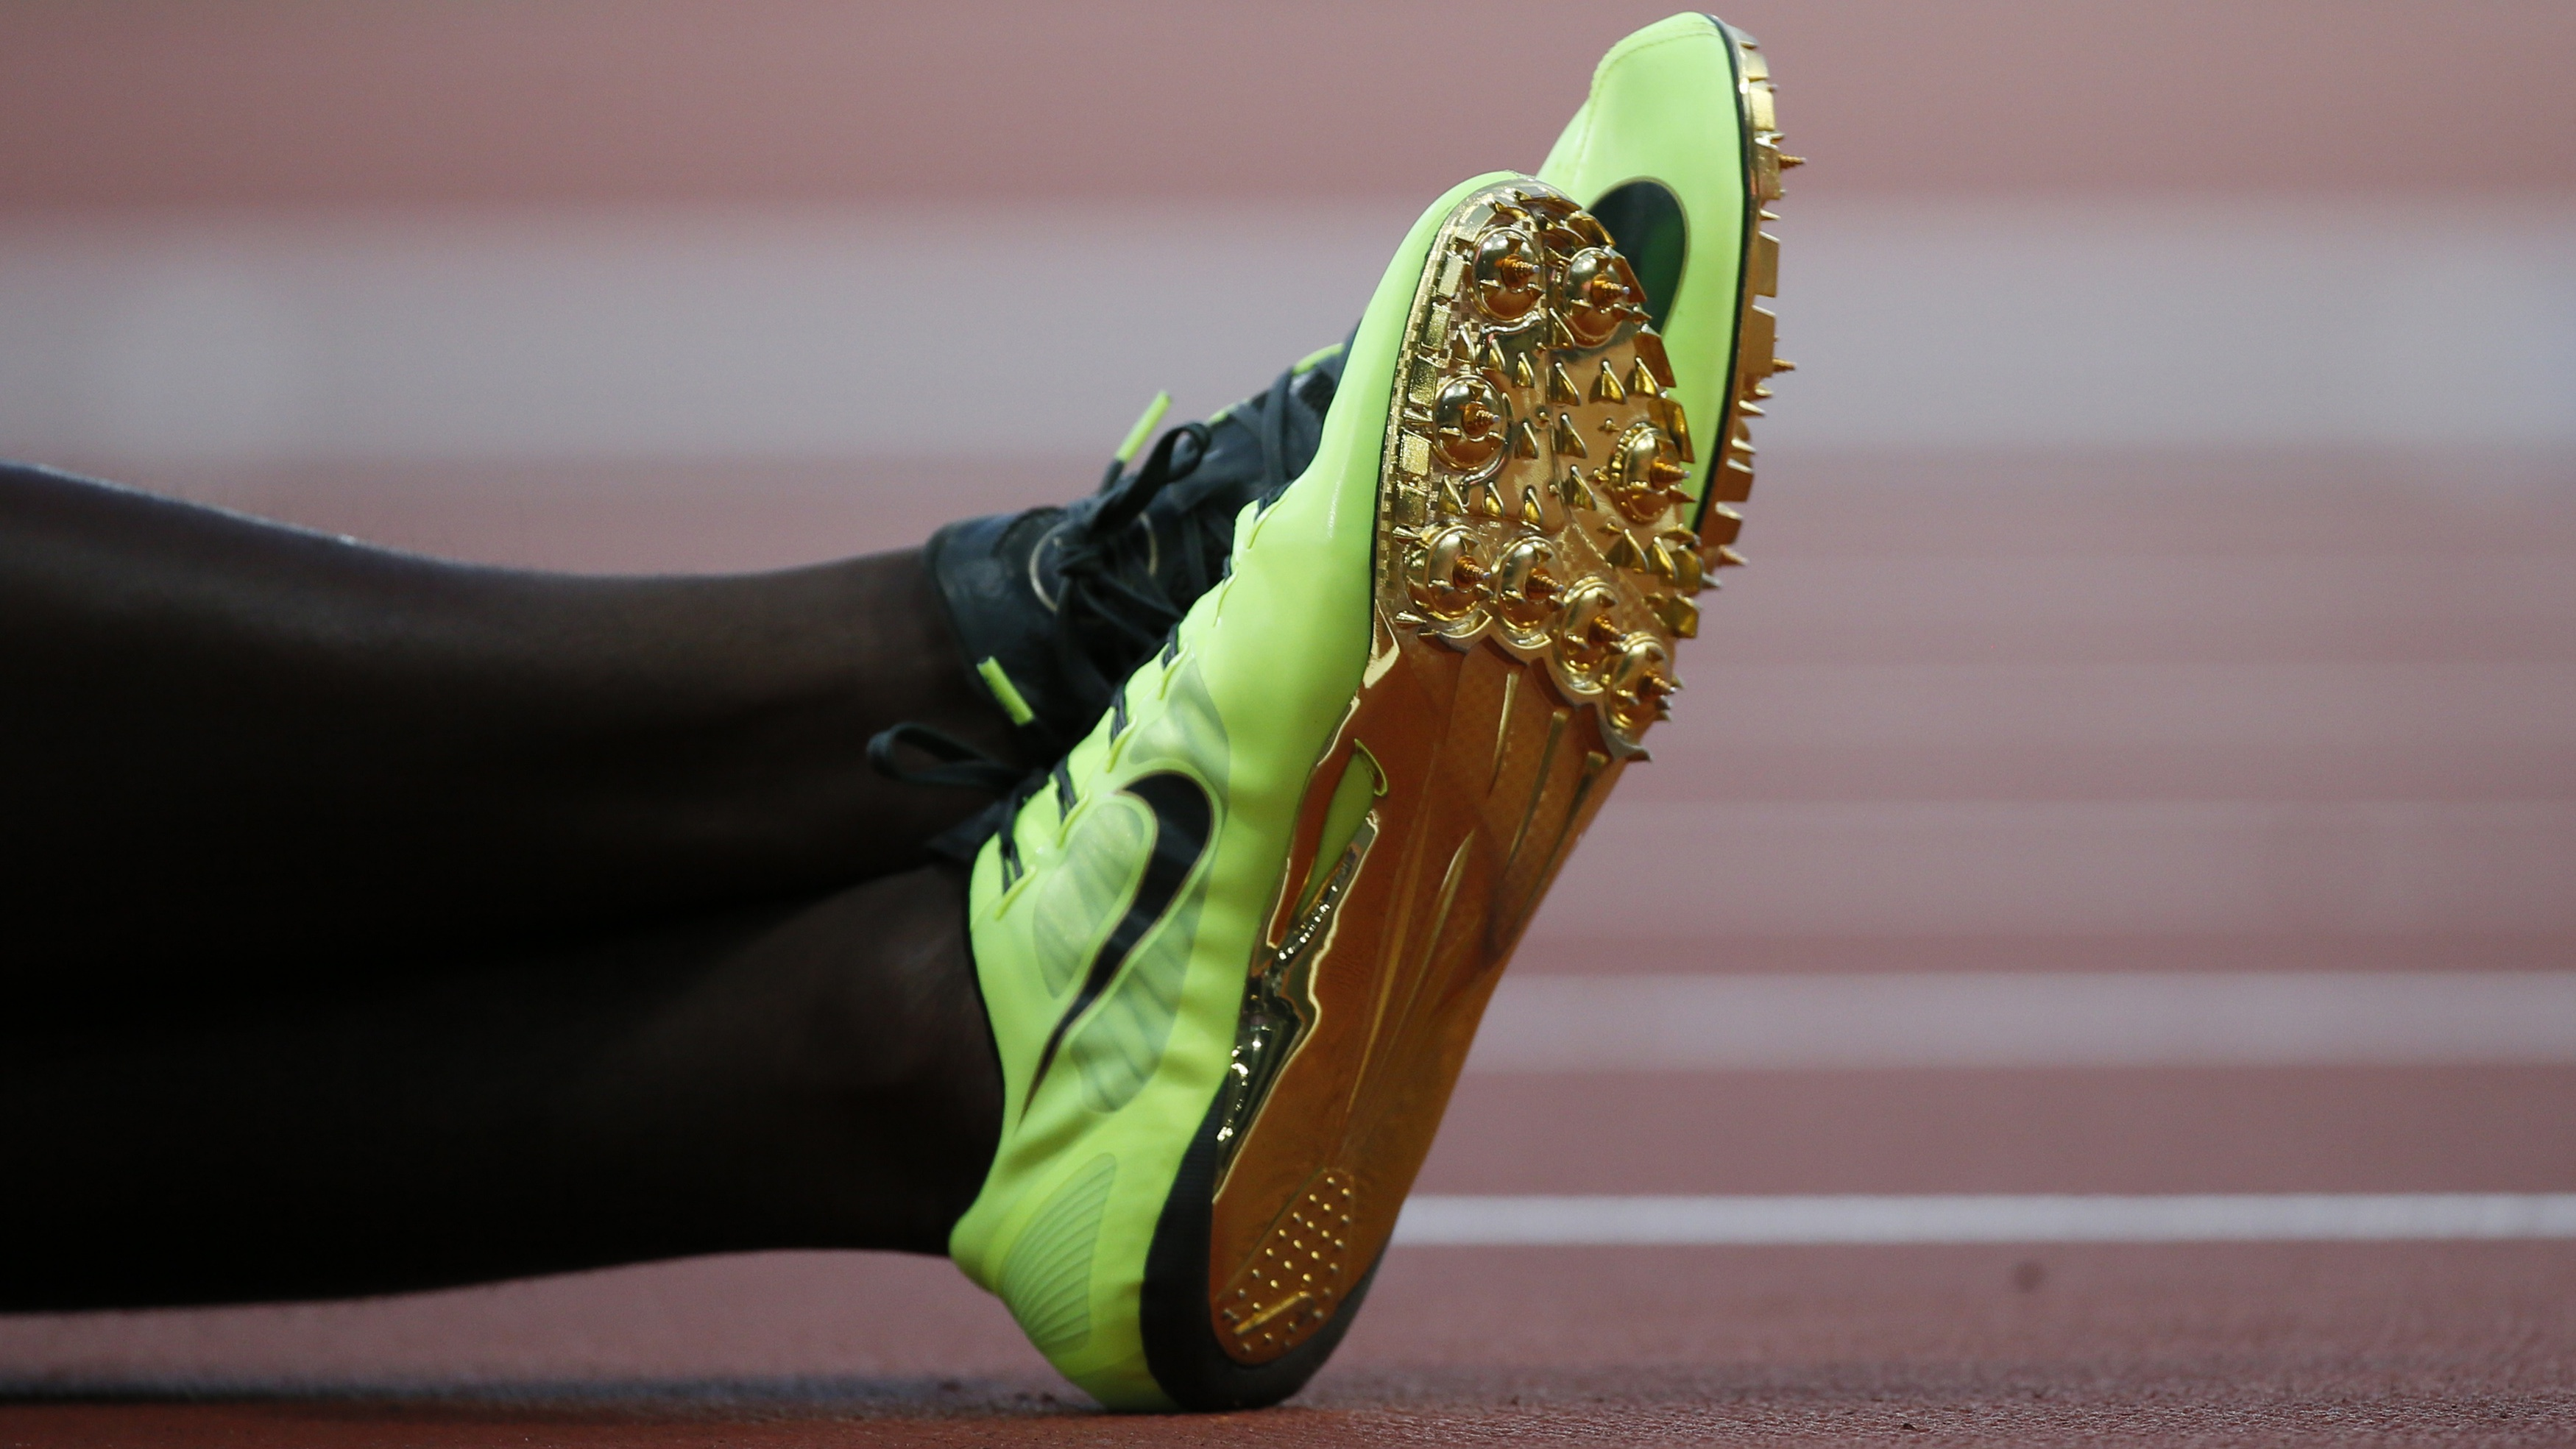 The shoes of Canada's Justyn Warner are seen during the men's 100m semi-final during the London 2012 Olympic Games at the Olympic Stadium August 5, 2012. REUTERS/Lucy Nicholson (BRITAIN - Tags: SPORT ATHLETICS OLYMPICS)